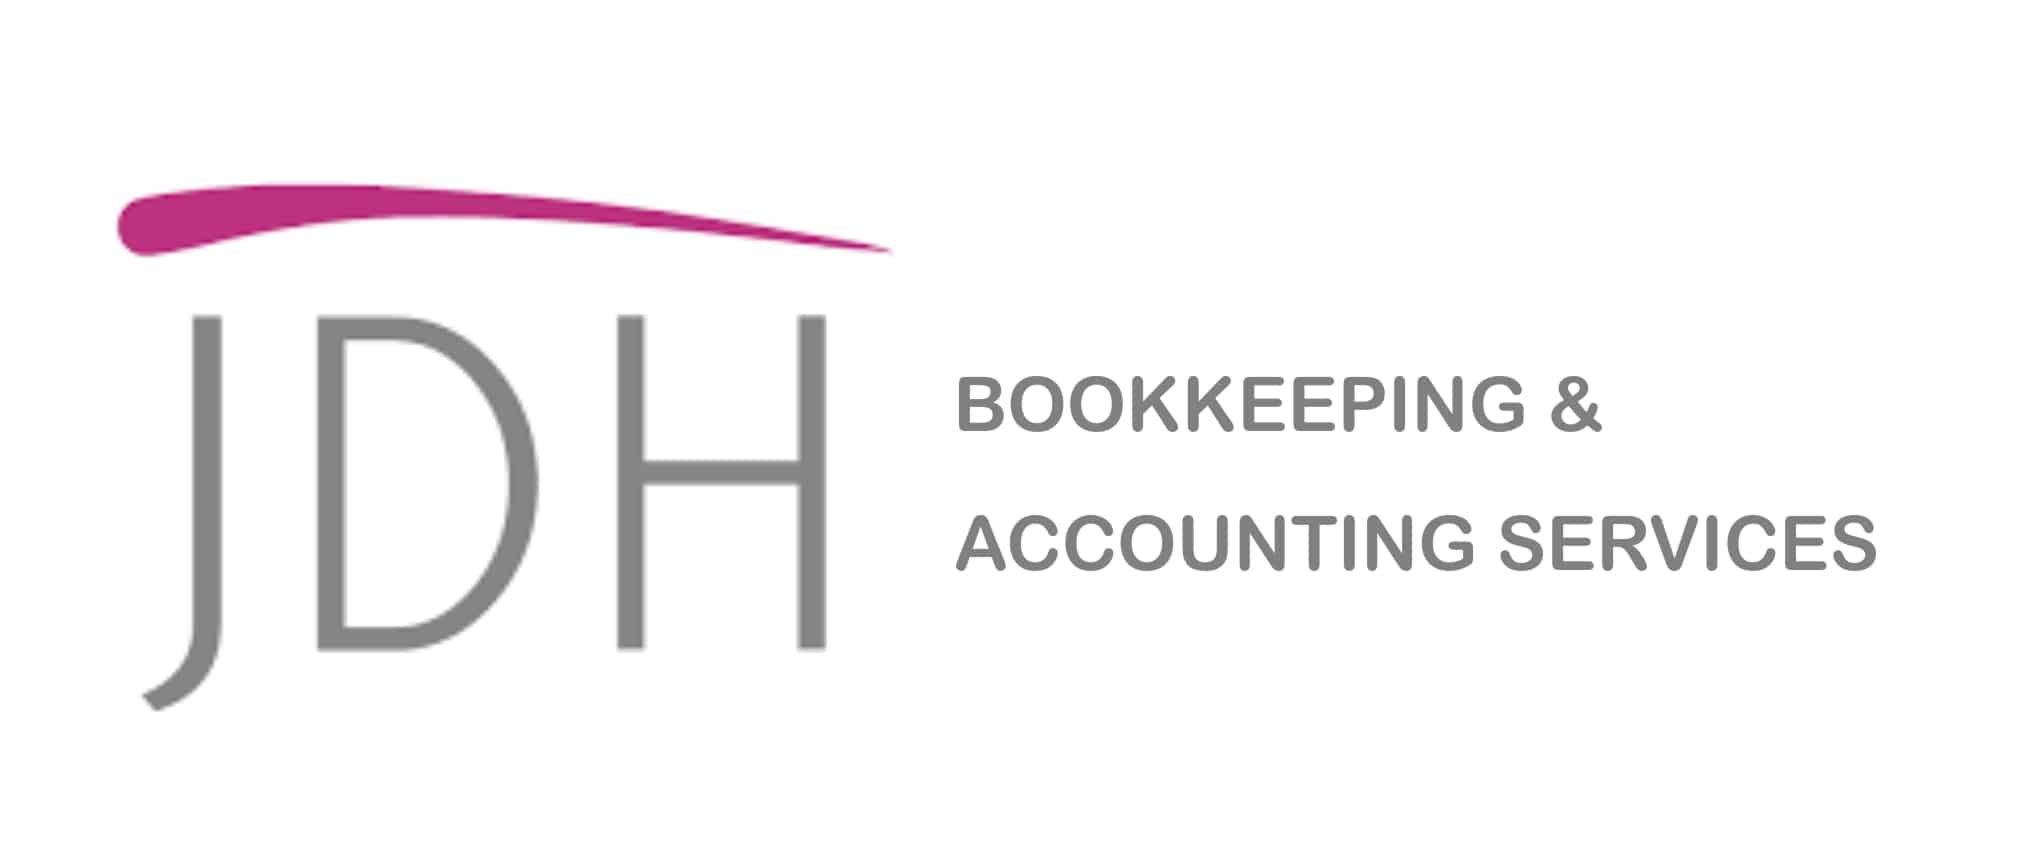 JDH Accountants & Bookkeeping | Abercynon, Pontypridd